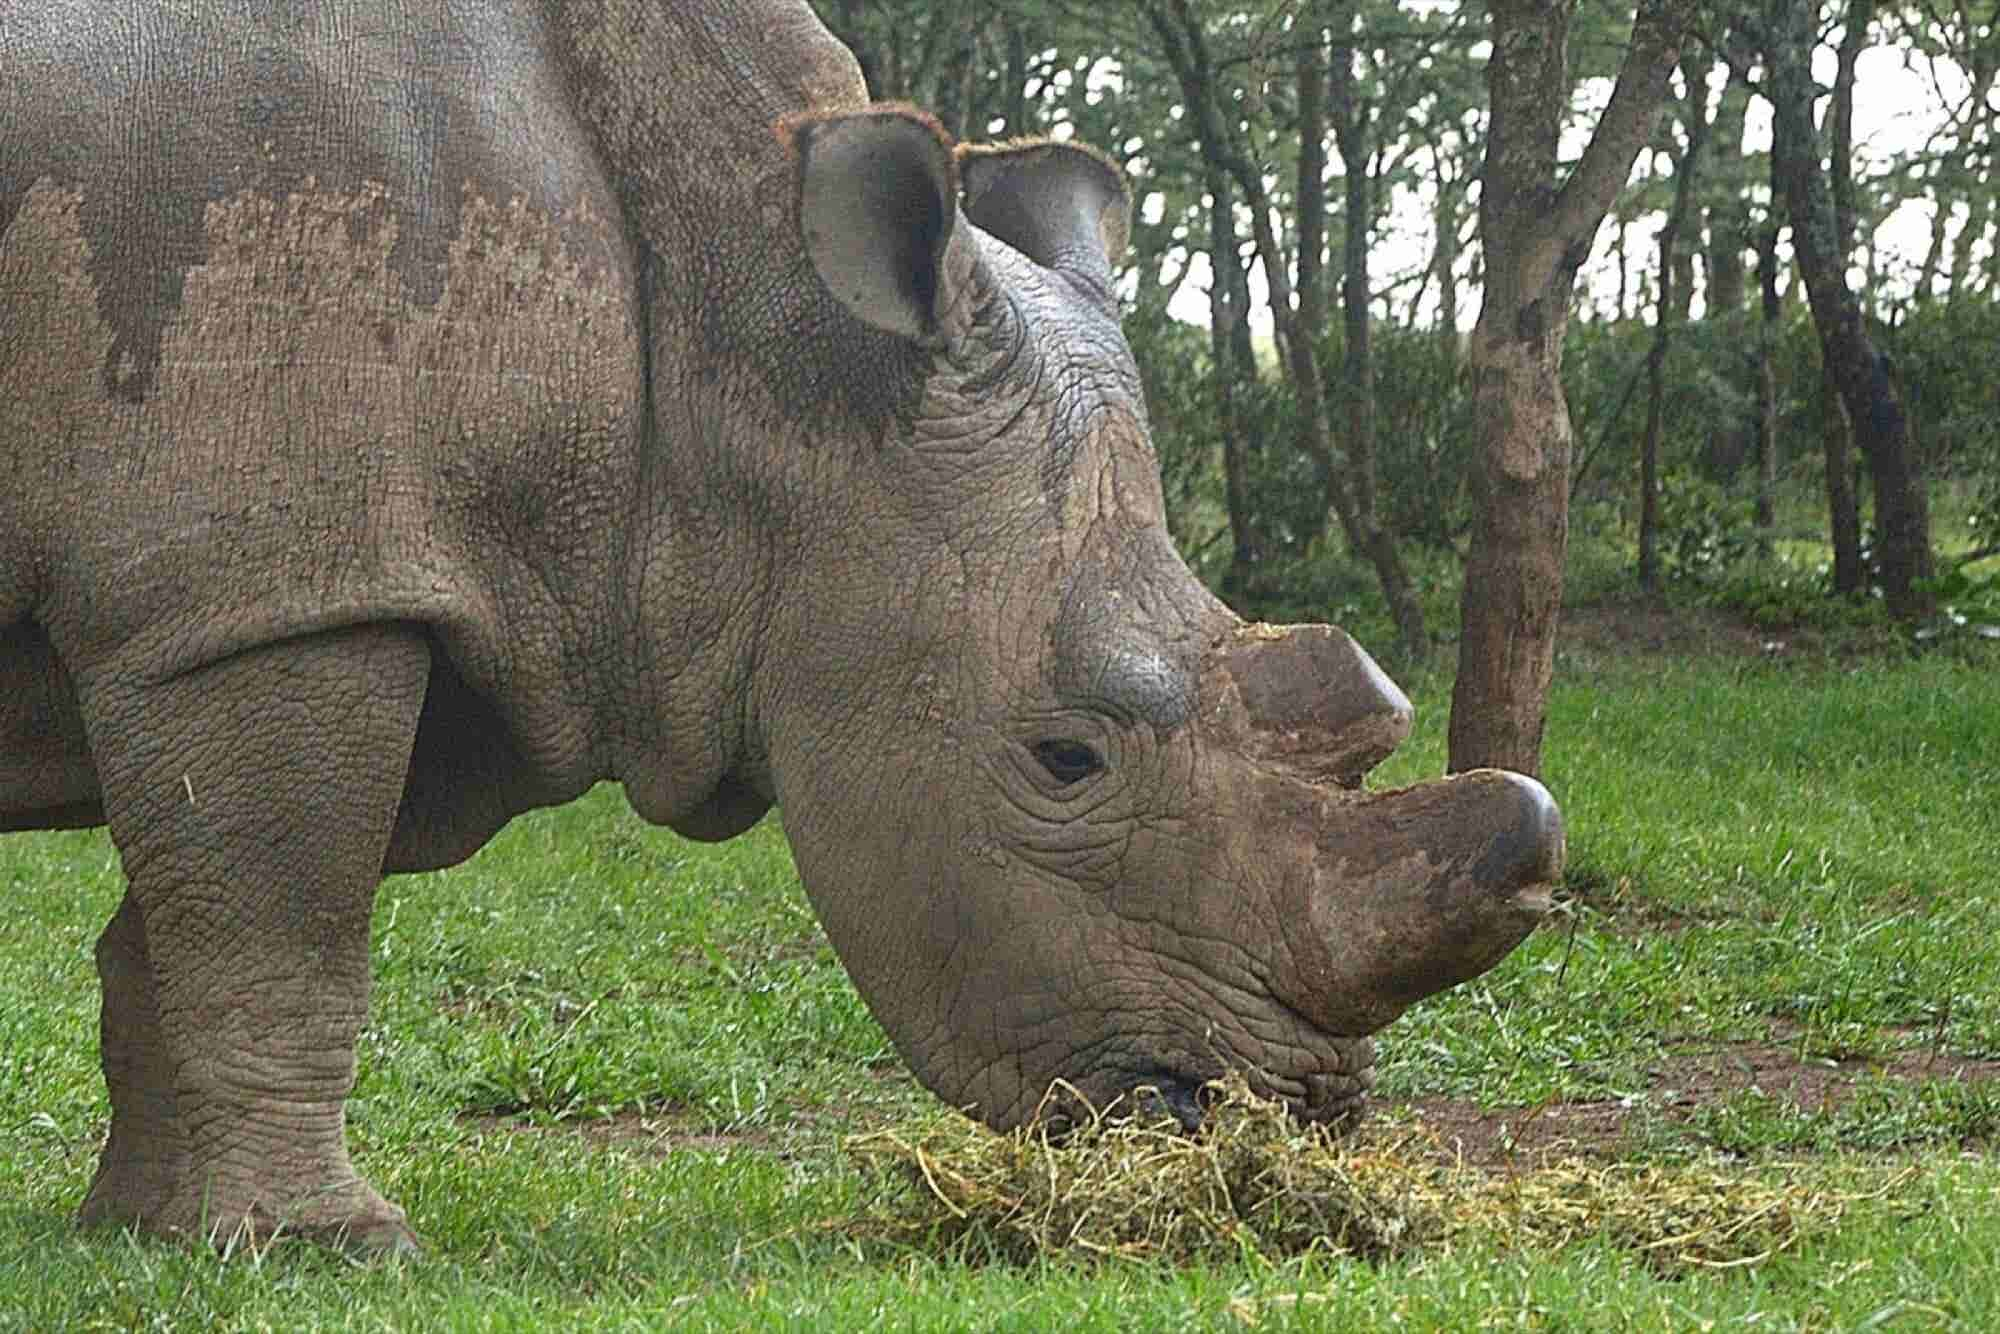 The World's Last Male Northern White Rhino Has Joined Tinder